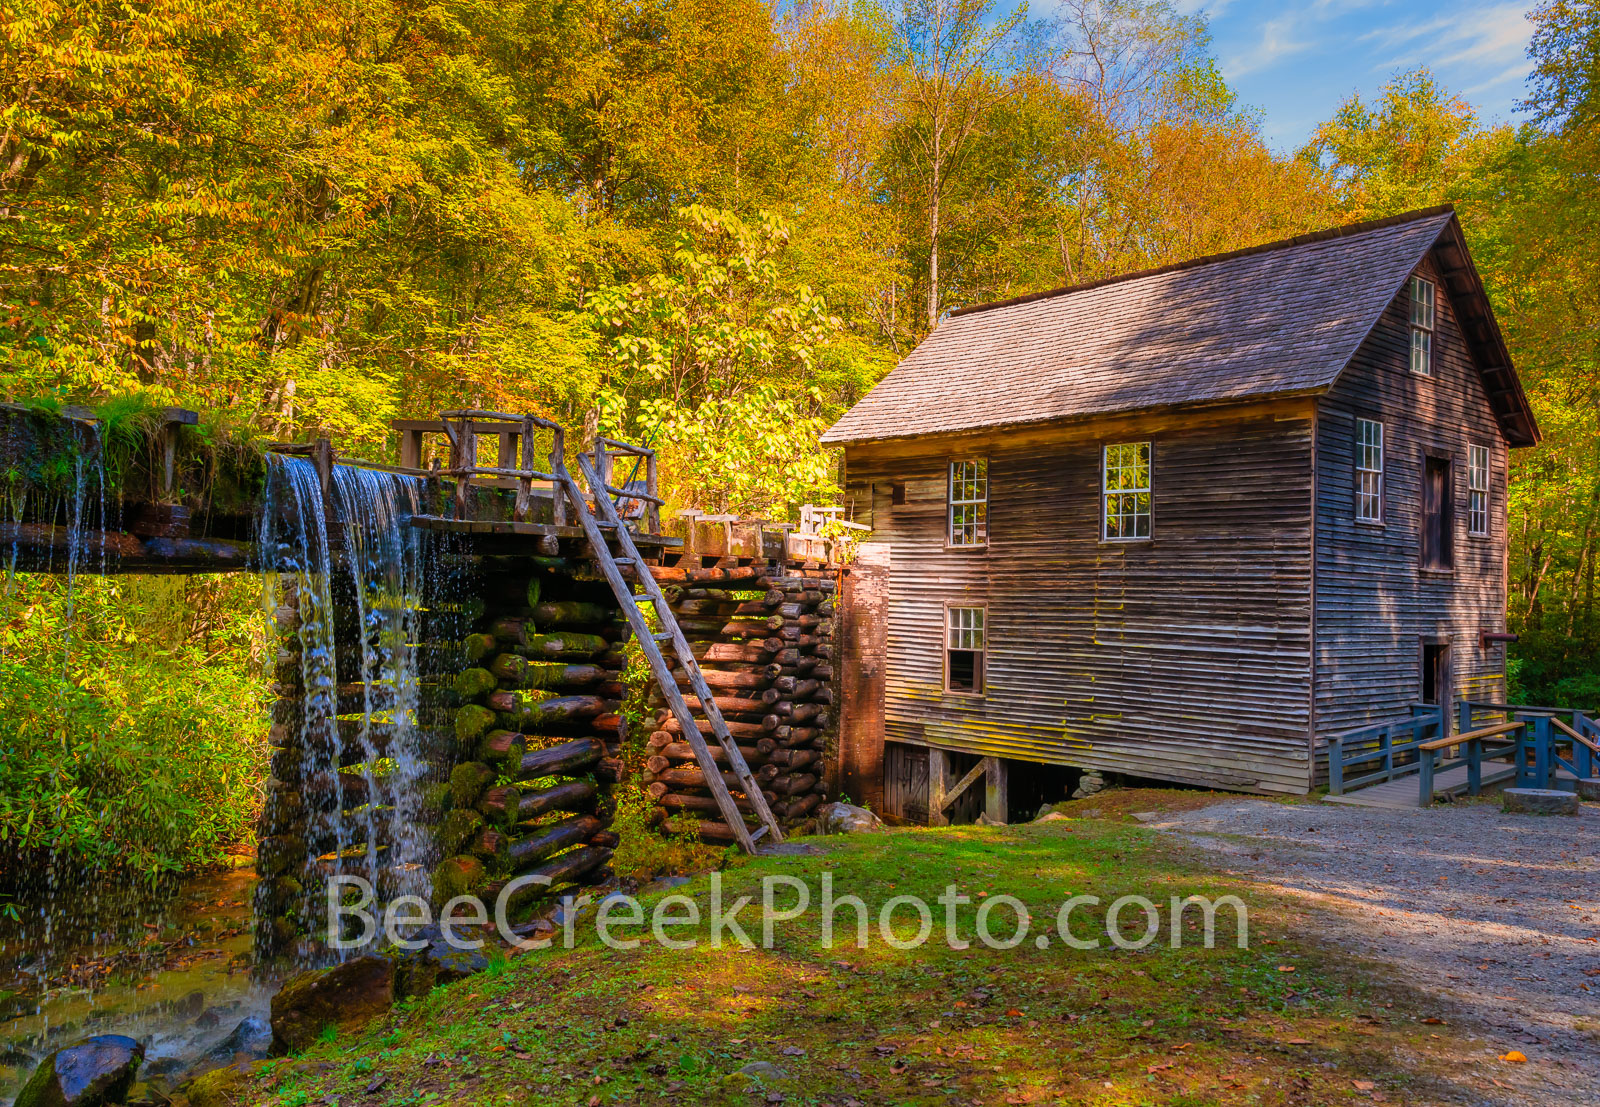 Mingus Mill, Smoky Mountains, gristmill, turbine, fall colors, autumn, waterfall, waterwheel, water, cascading, wooden flume,, photo